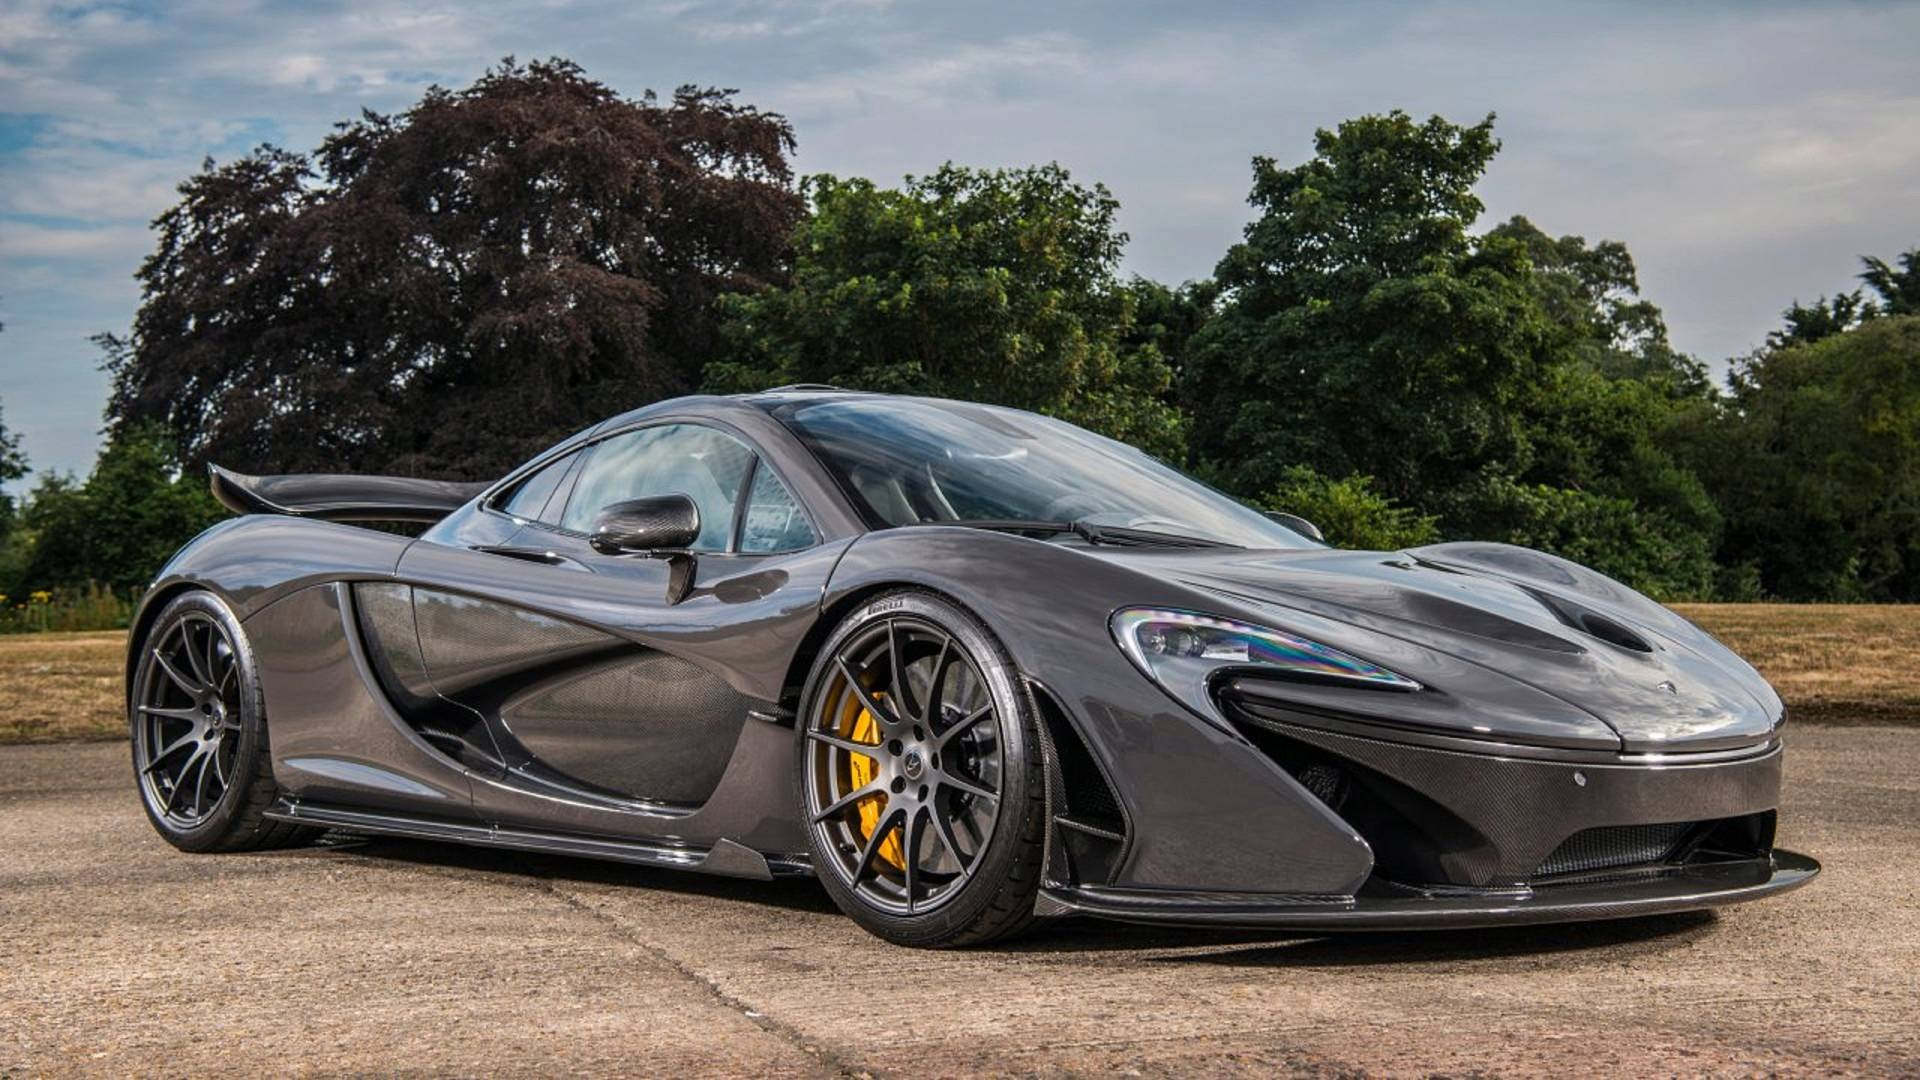 jenson button s mclaren p1 for sale with just 887 km on the clock. Black Bedroom Furniture Sets. Home Design Ideas